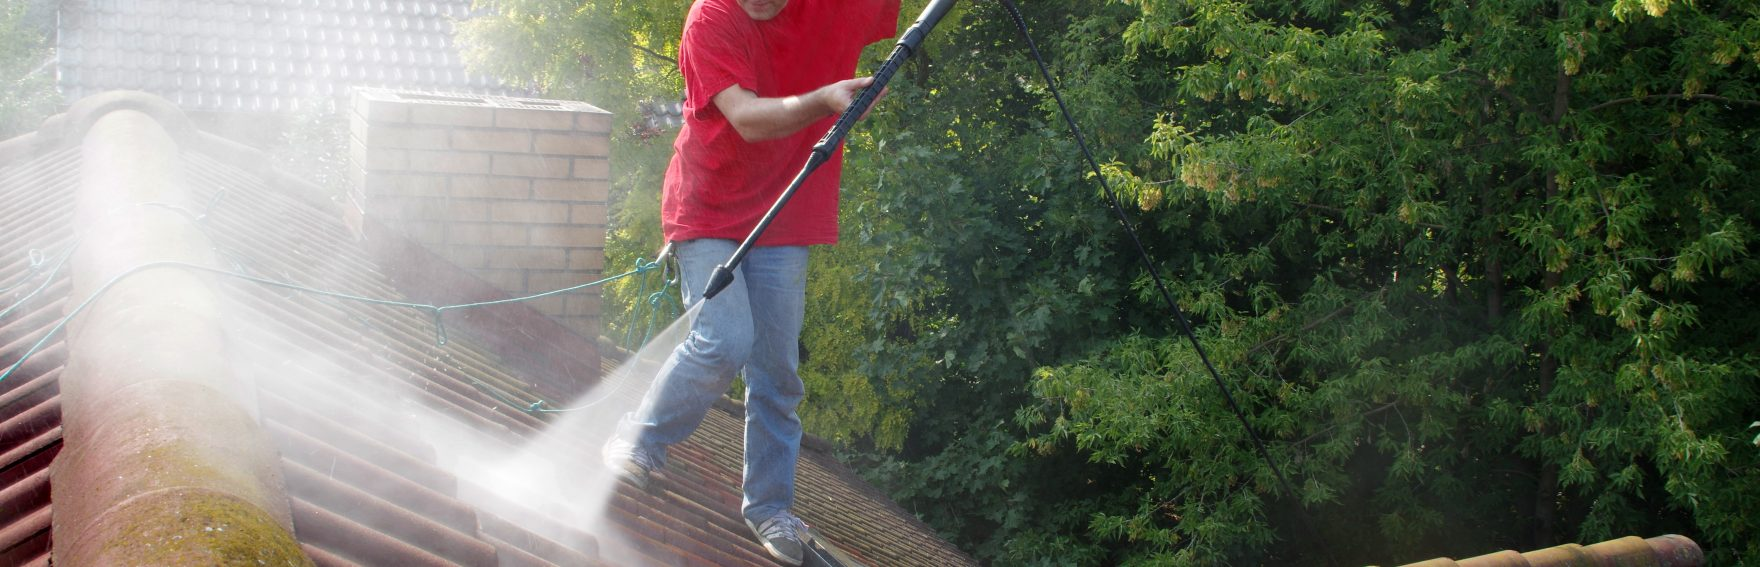 Commercial Pressure Washer Scottsdale Roof cleaning